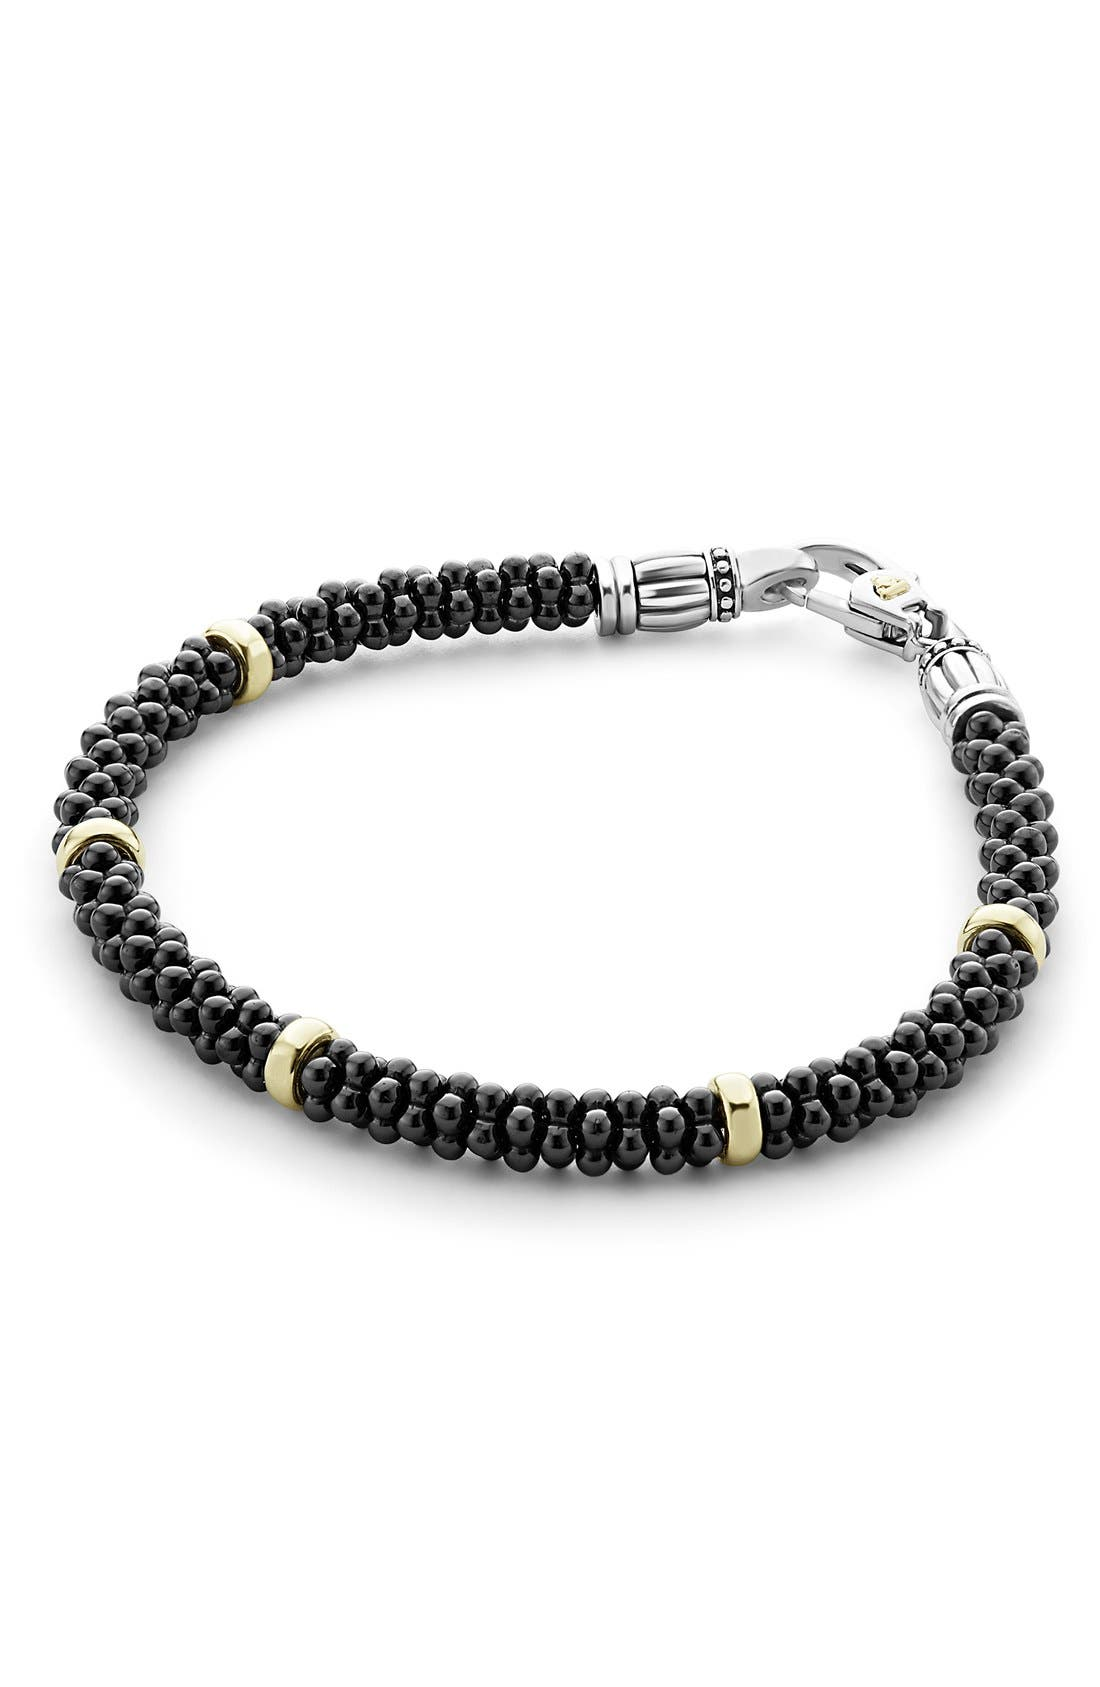 'Caviar Gold' Bracelet,                             Main thumbnail 1, color,                             BLACK/ GOLD